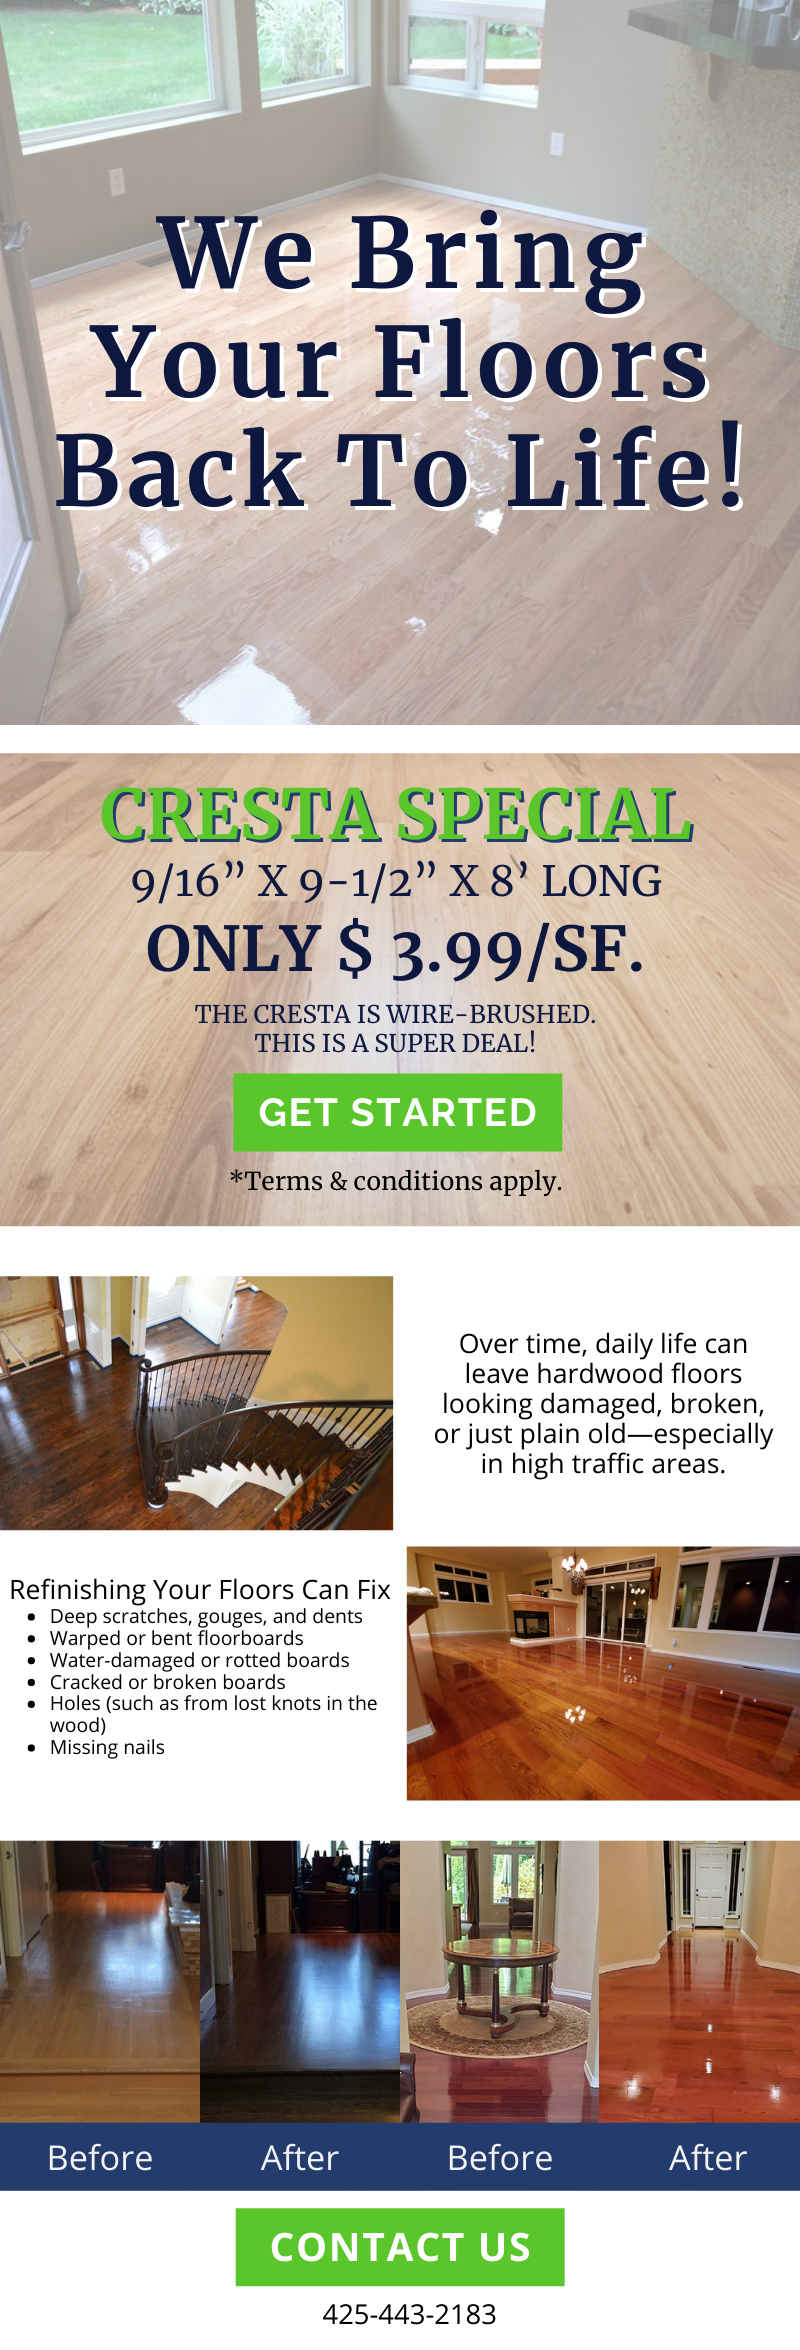 We Bring Your Floors Back To Life! 1